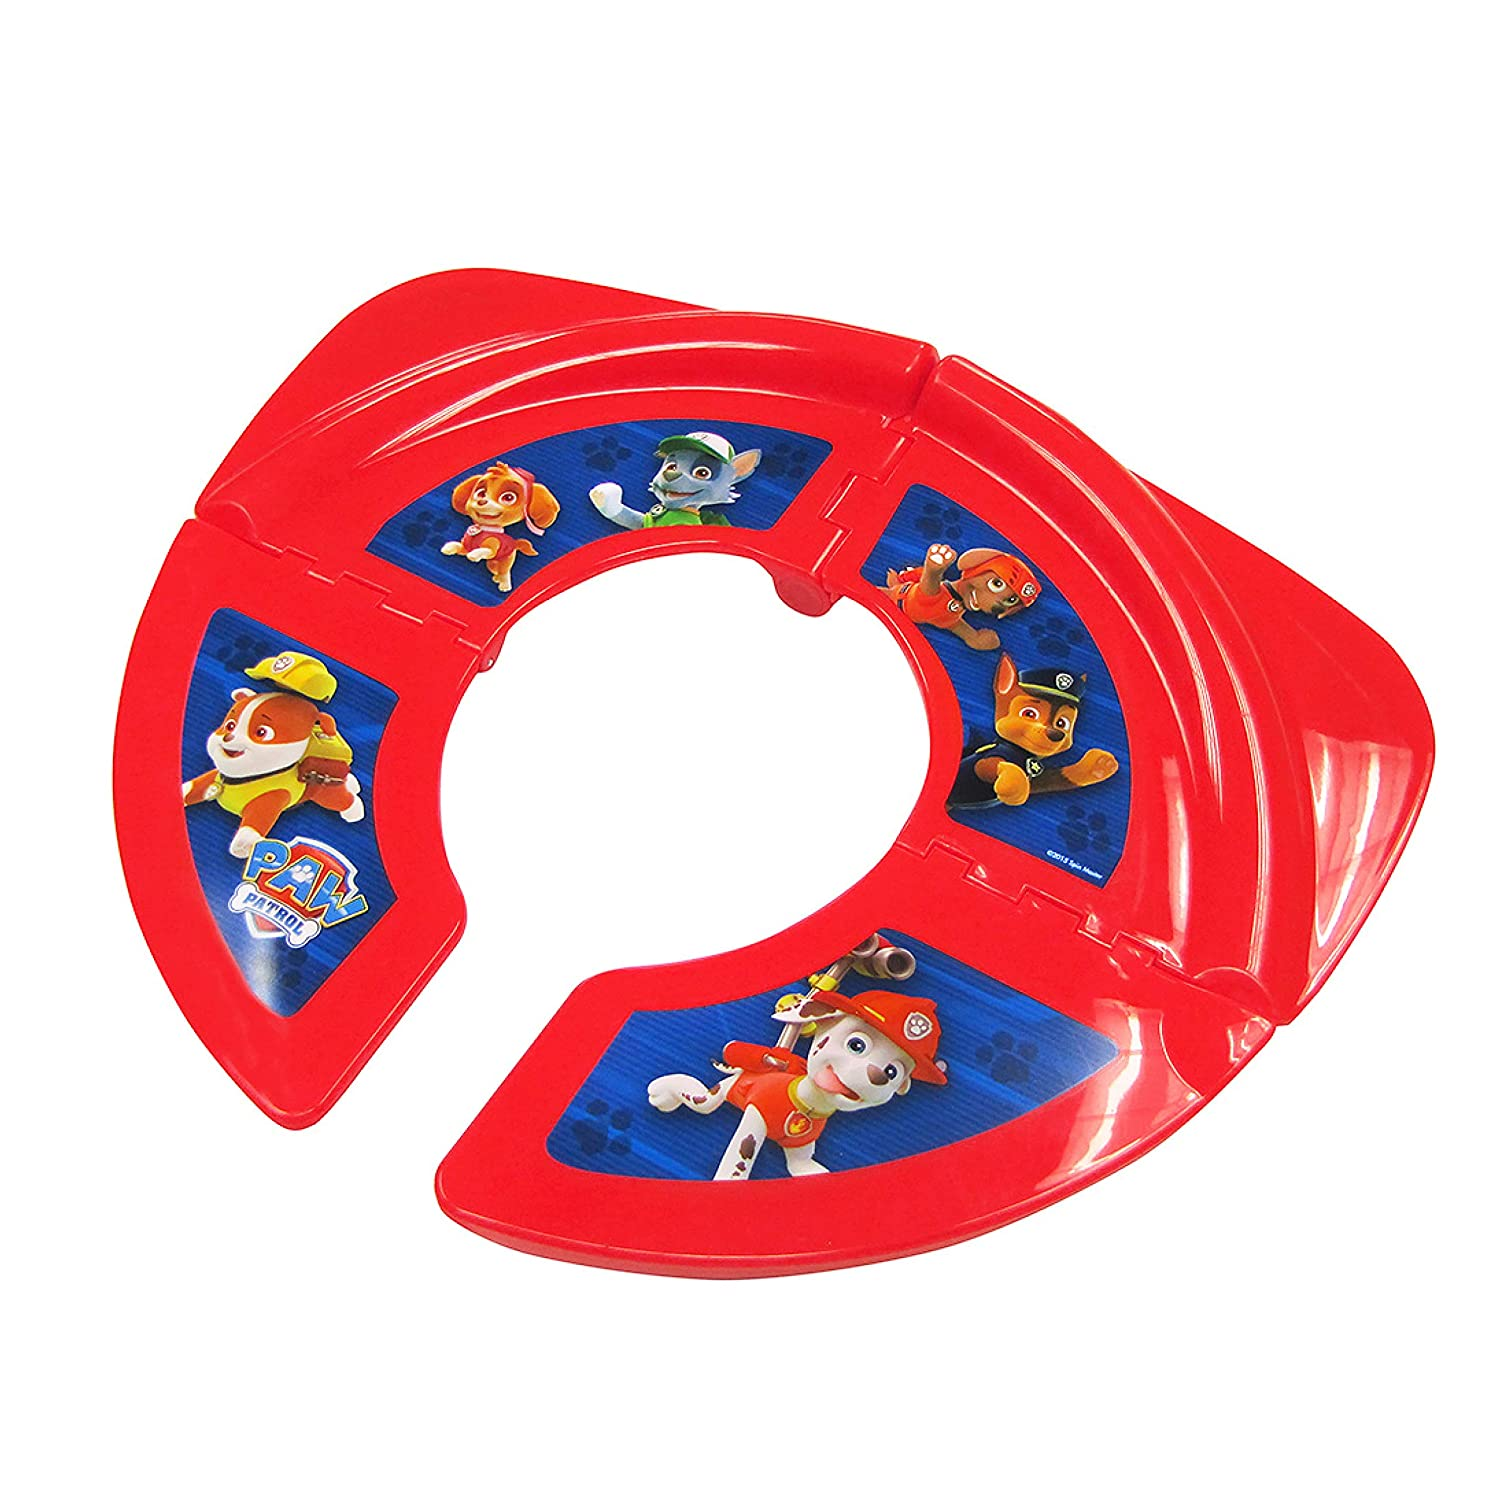 Ginsey Home Solutions Nickelodeon Paw Patrol Travel/Folding Potty Seat, 8 Oz